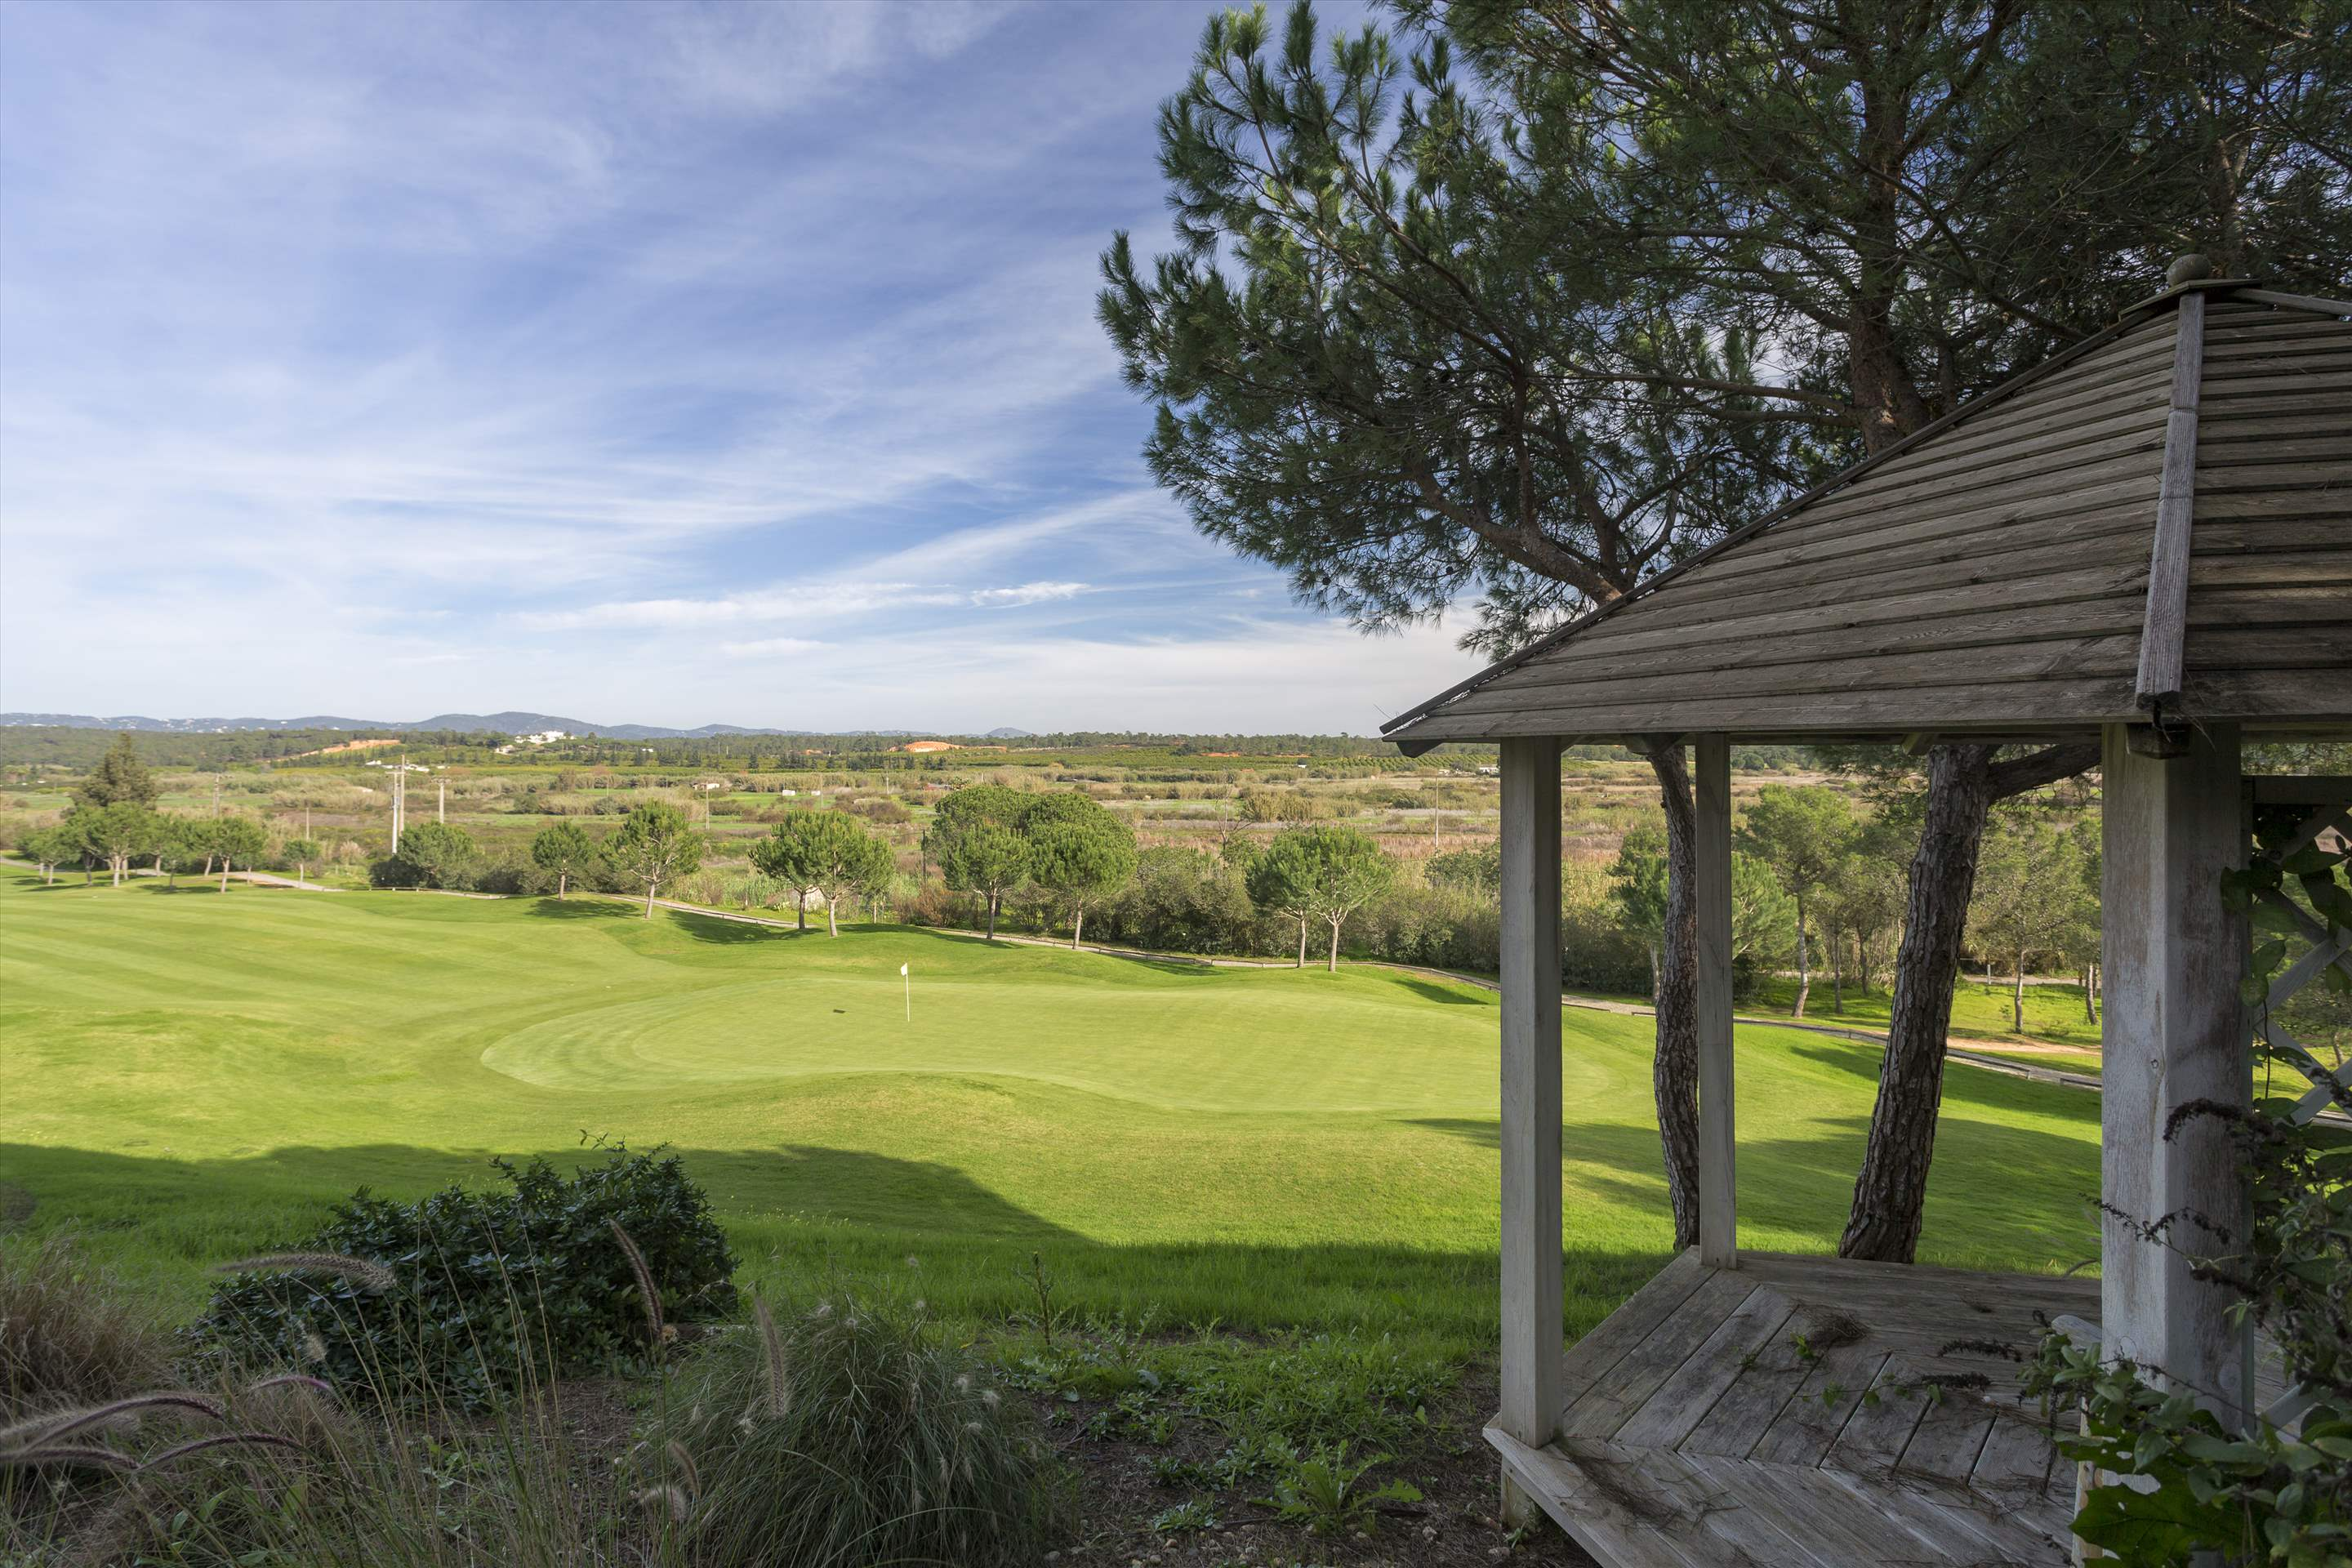 Villa Palmeiras Altas, 5 bedroom villa in Quinta do Lago, Algarve Photo #35